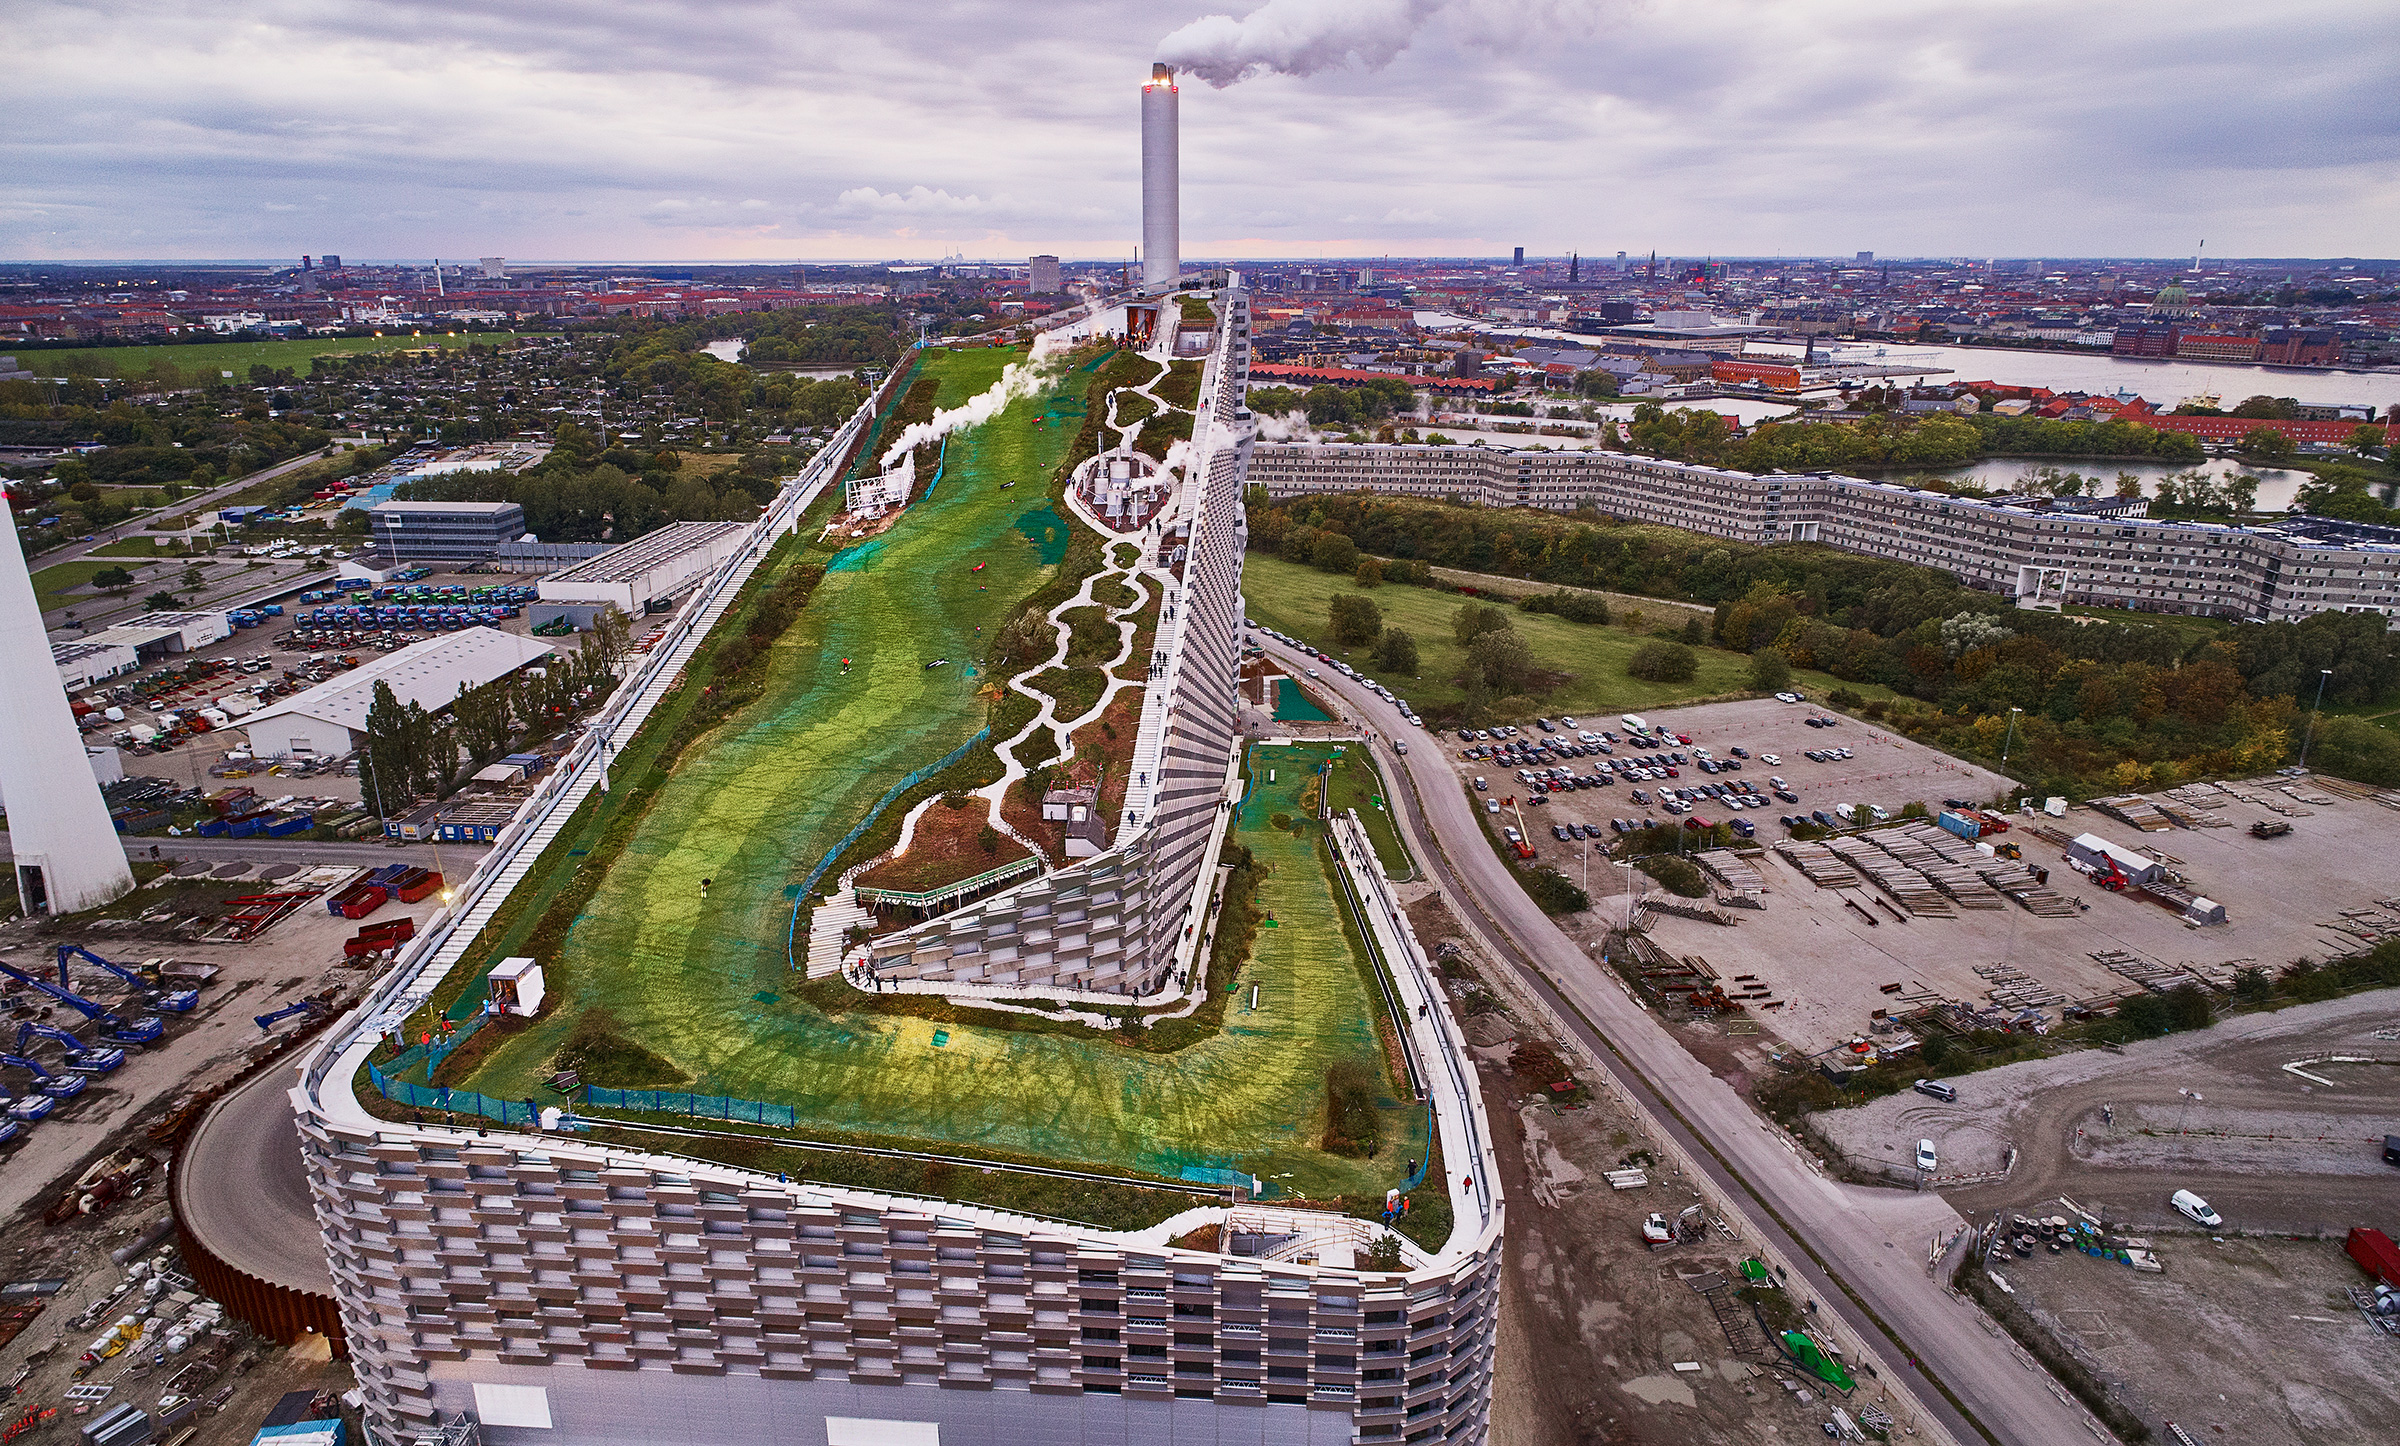 BIG's ski slope on top of a power plant, opened to the public in Copenhagen in October 2019, embodies Ingels' ethos of  hedonistic sustainability.